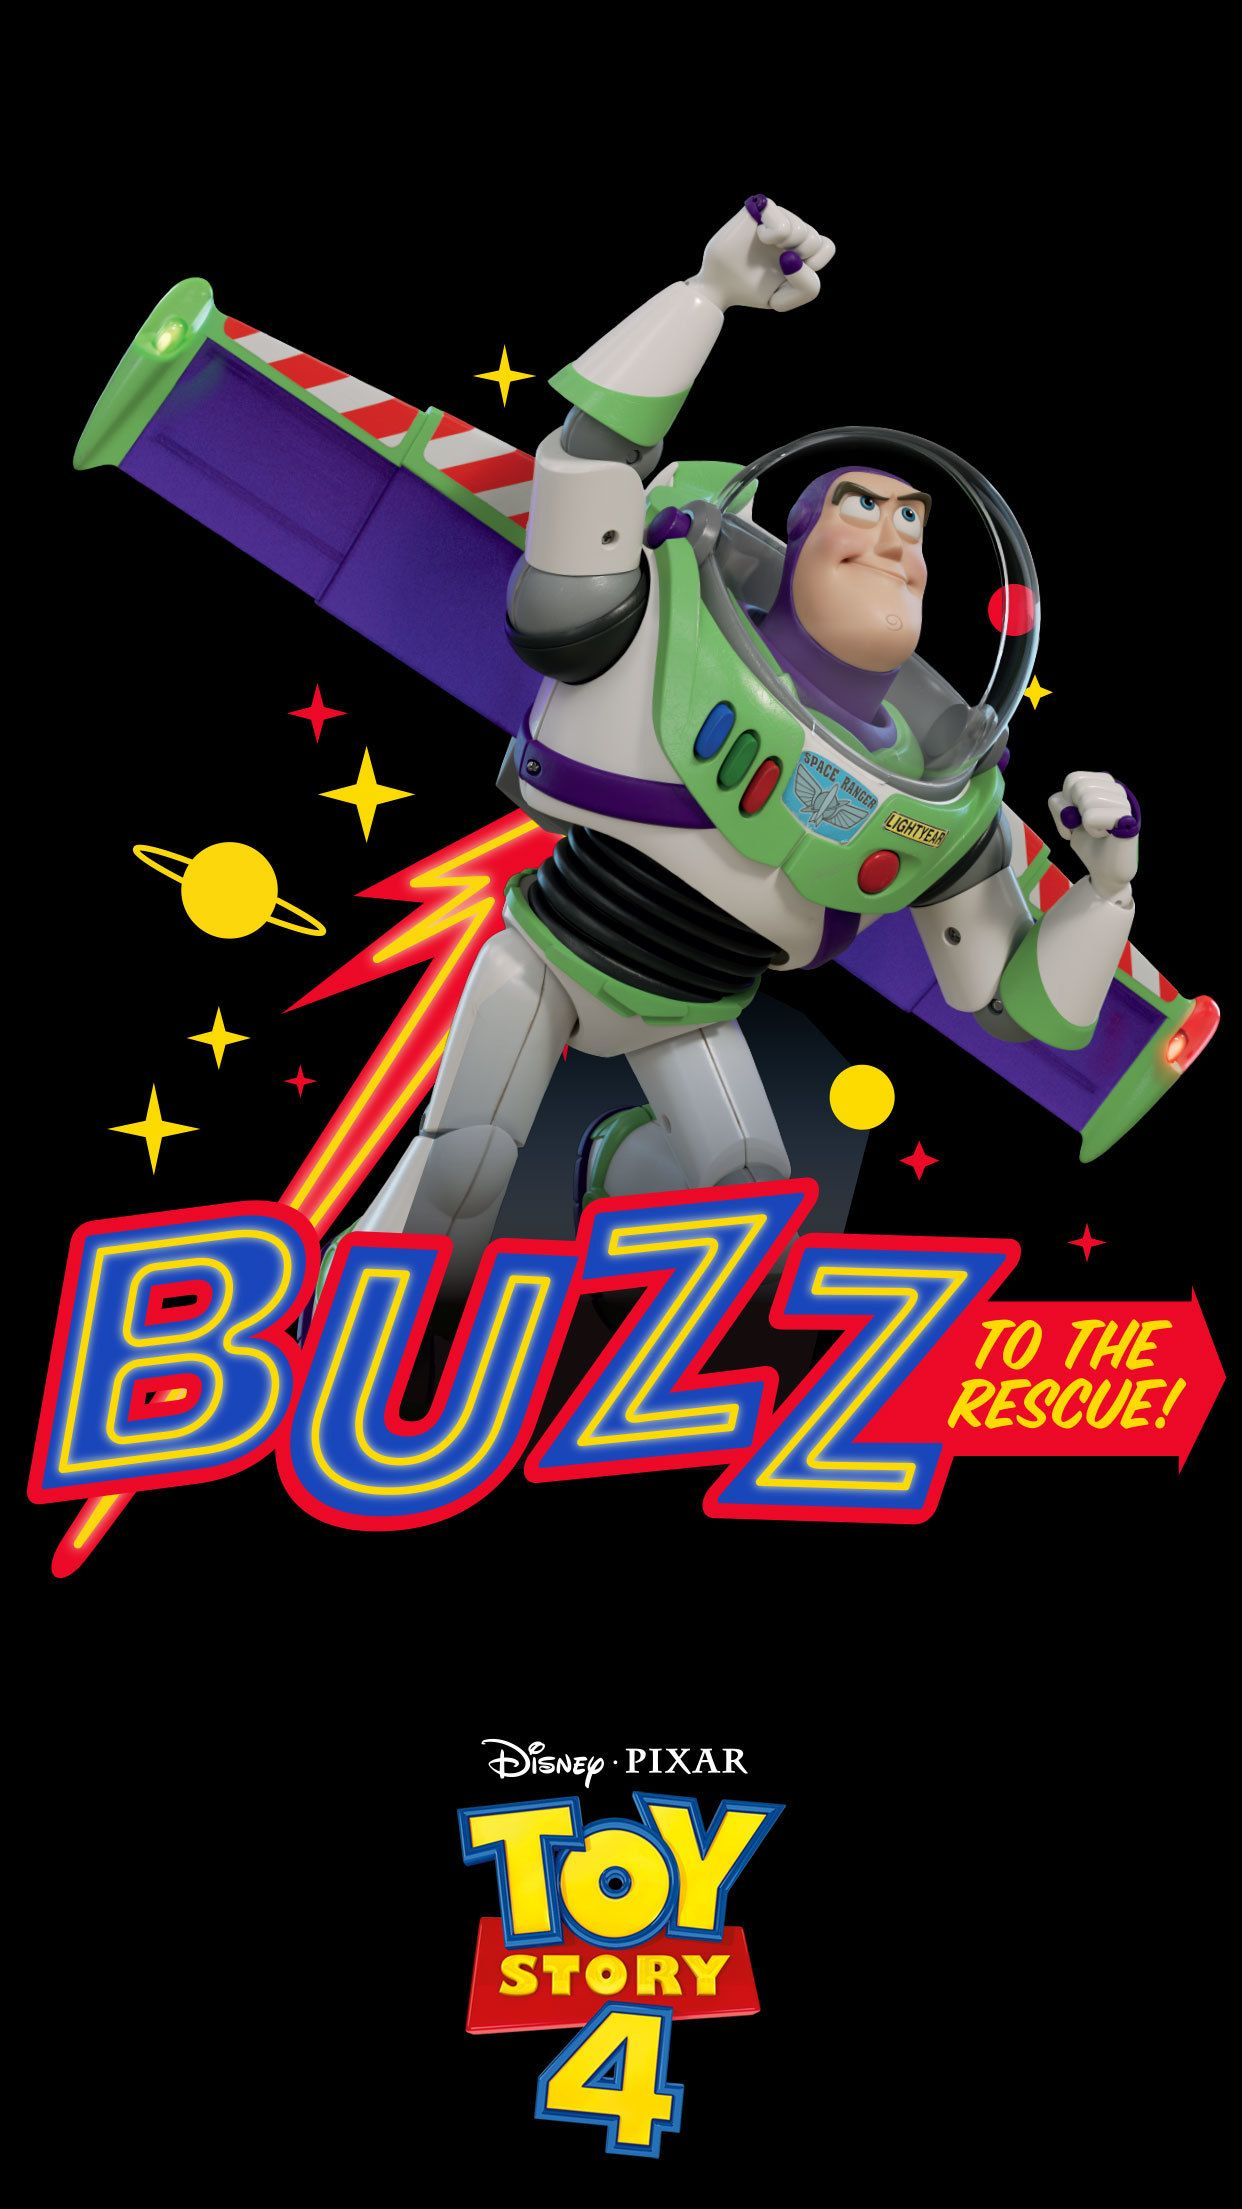 Go To Infinity And Beyond With These Disney And Pixar Toy Story 4 Mobile Wallpapers Disney Singapore In 2020 Toy Story Movie Toy Story Buzz Lightyear Toy Story Buzz